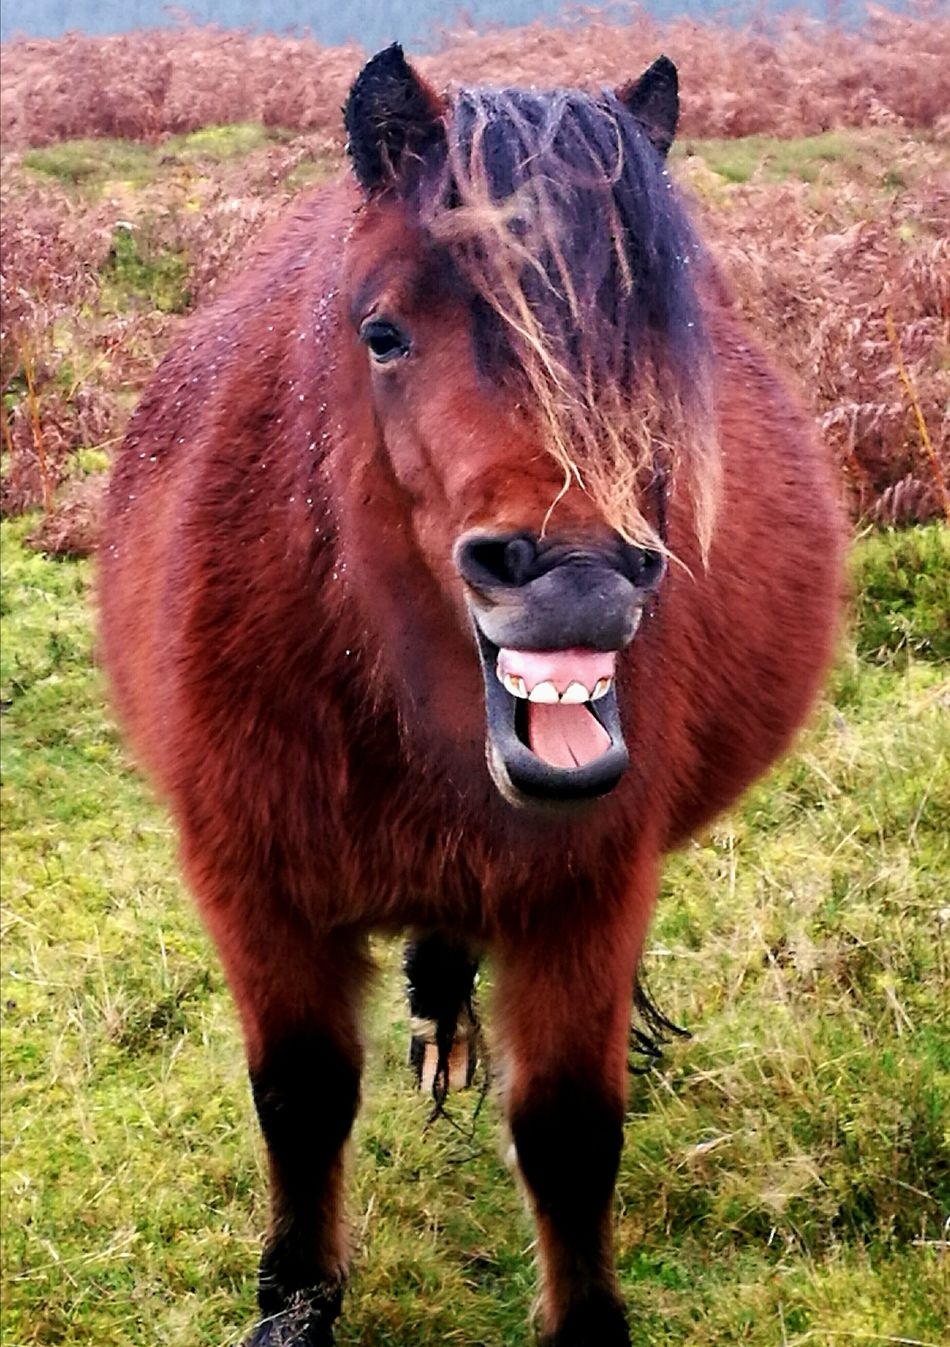 Laughing Pony One Animal Grass Nature Wildlife Mammal Animal Themes Outdoors Animals In The Wild Nature Close-up